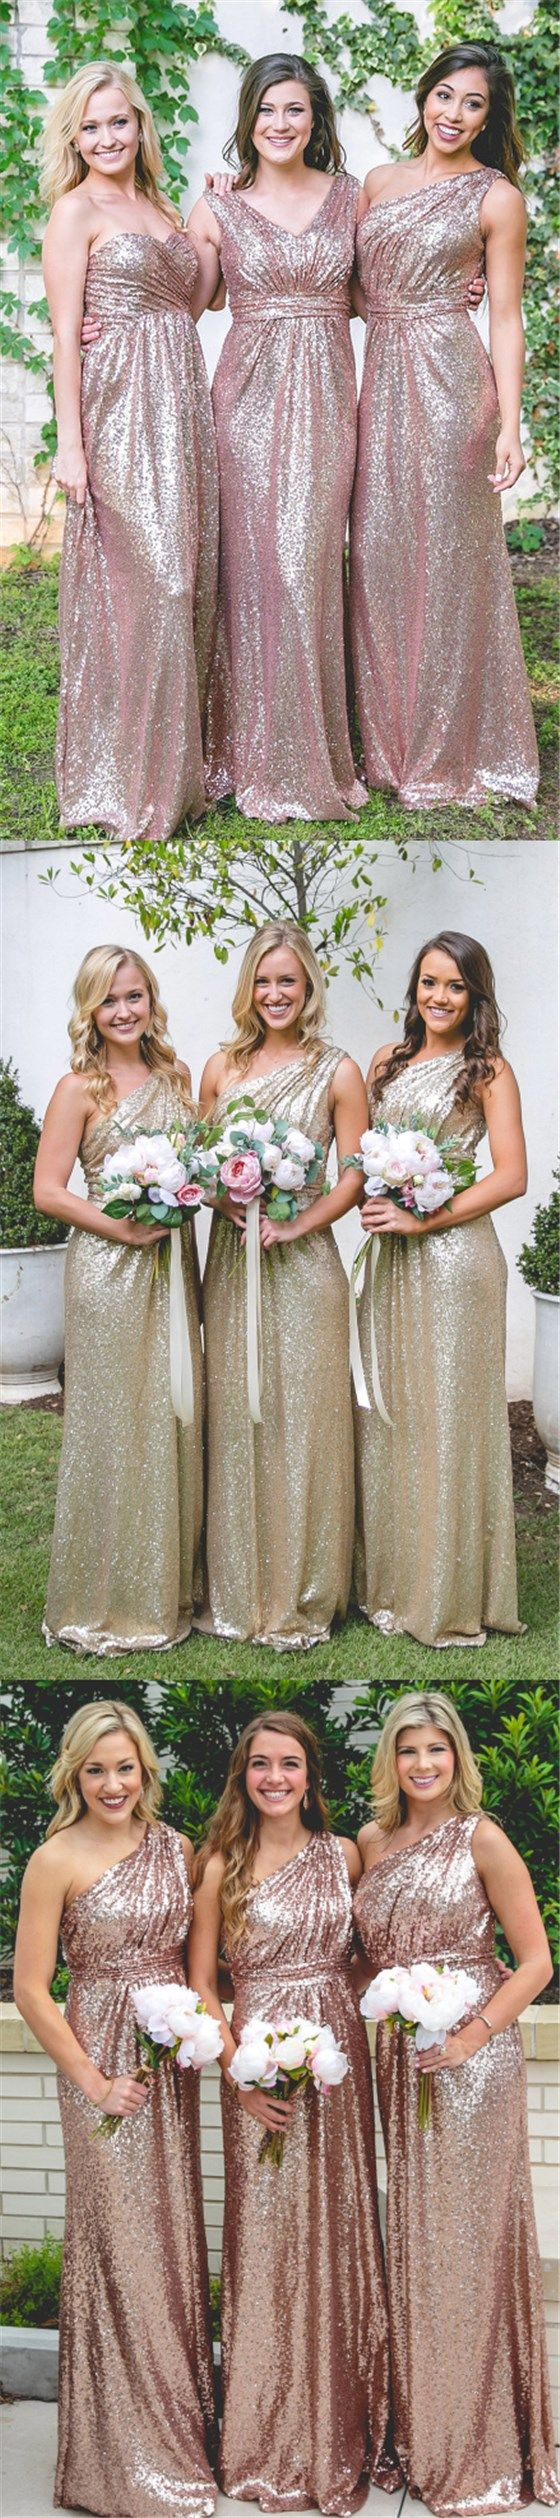 The 25 best sparkly bridesmaid dress ideas on pinterest gold custom cheap sparkly sequin mismatched bridesmaid dresses most popular dress for wedding guest pd0457 ombrellifo Image collections